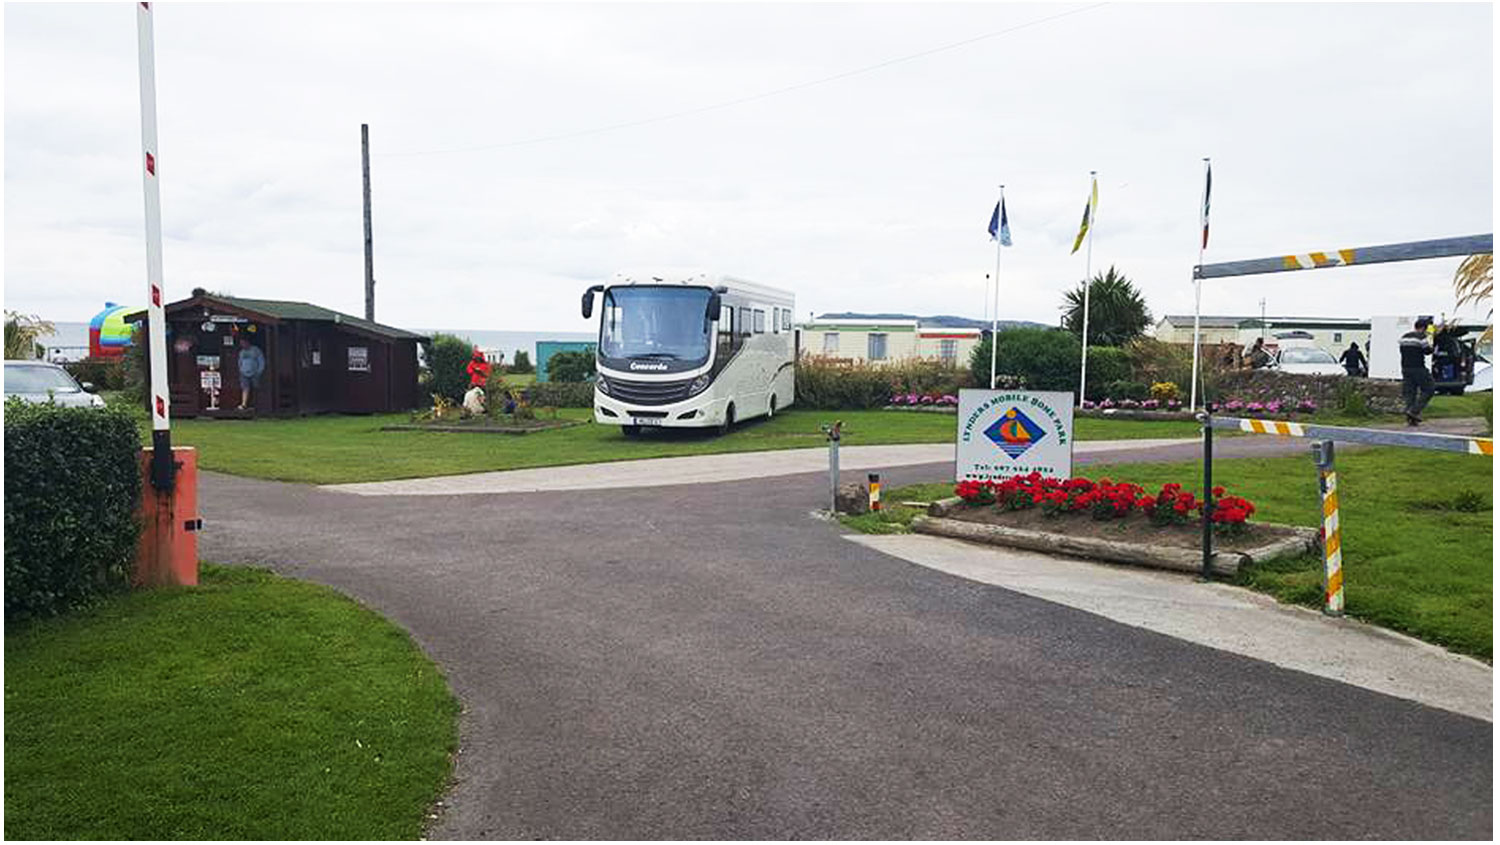 Front-Entrance-Camping-Campervans-Motorhomes-Lynders-Mobile-Home-Park-PortraneDonabate-North-County-Dublin-Fingal